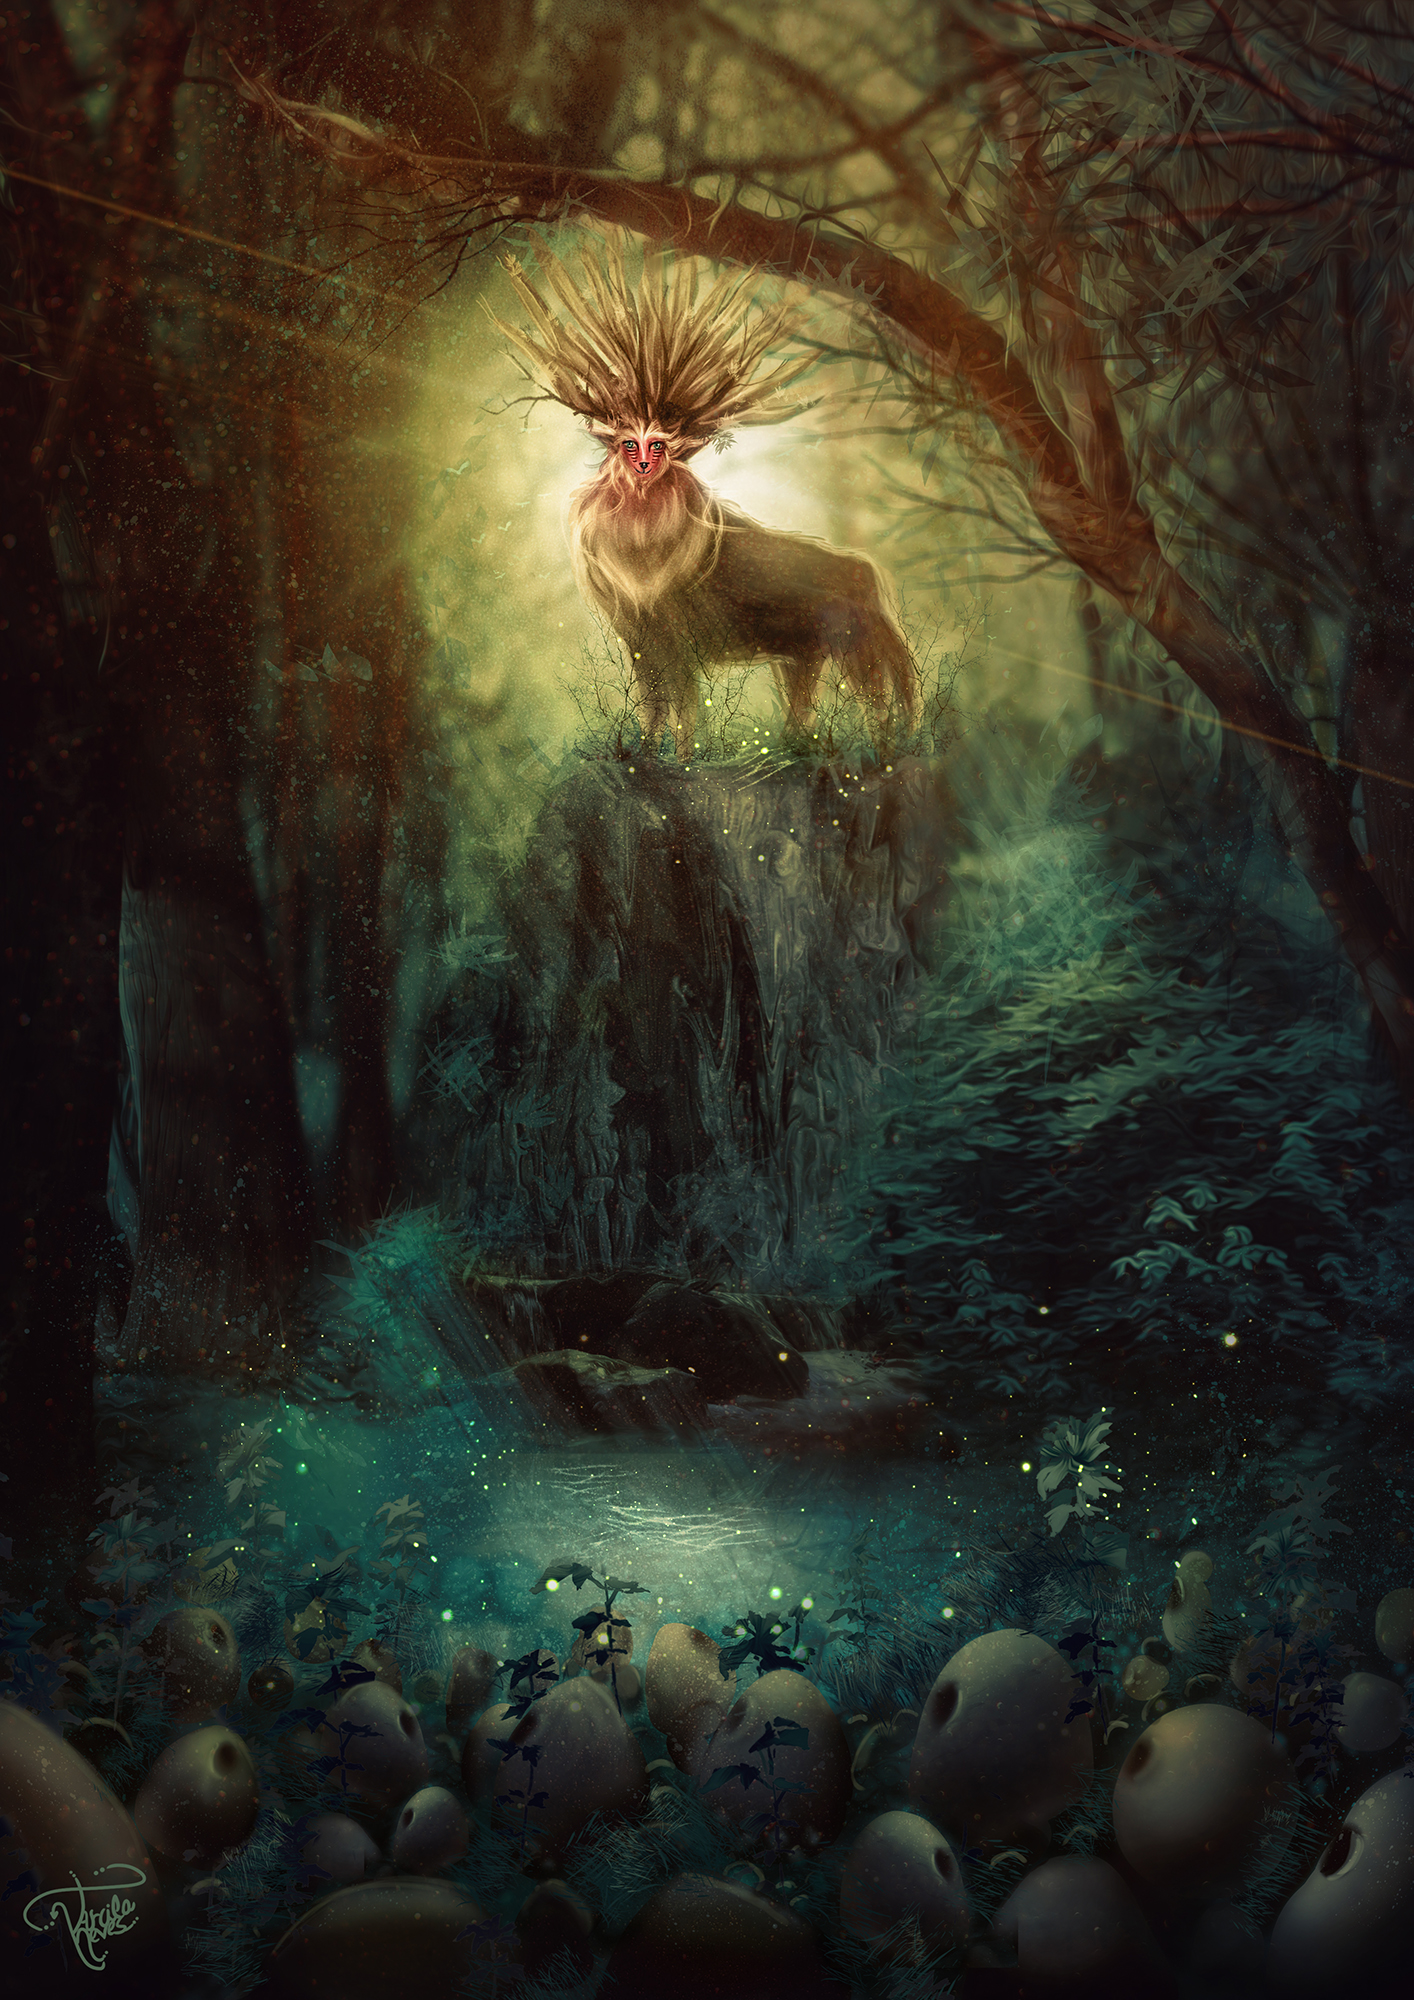 spirit_of_​forest___p​rincess_mo​nonoke_by_​killergree​nwp-d8ob63​s